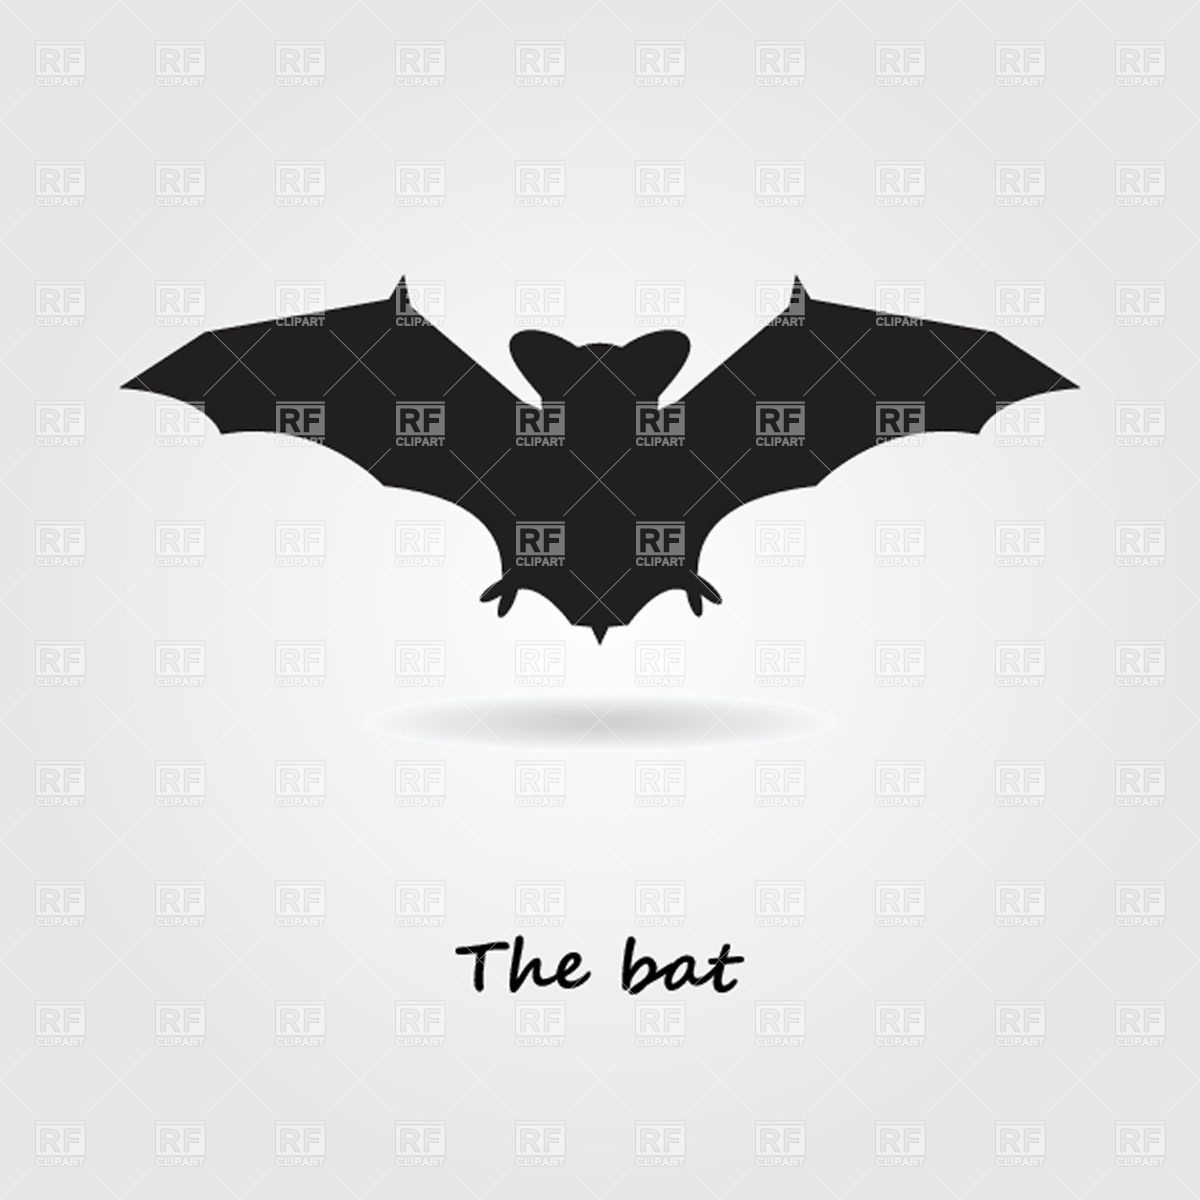 1200x1200 Silhouette Of Halloween Bat With Spread Wings Vector Image